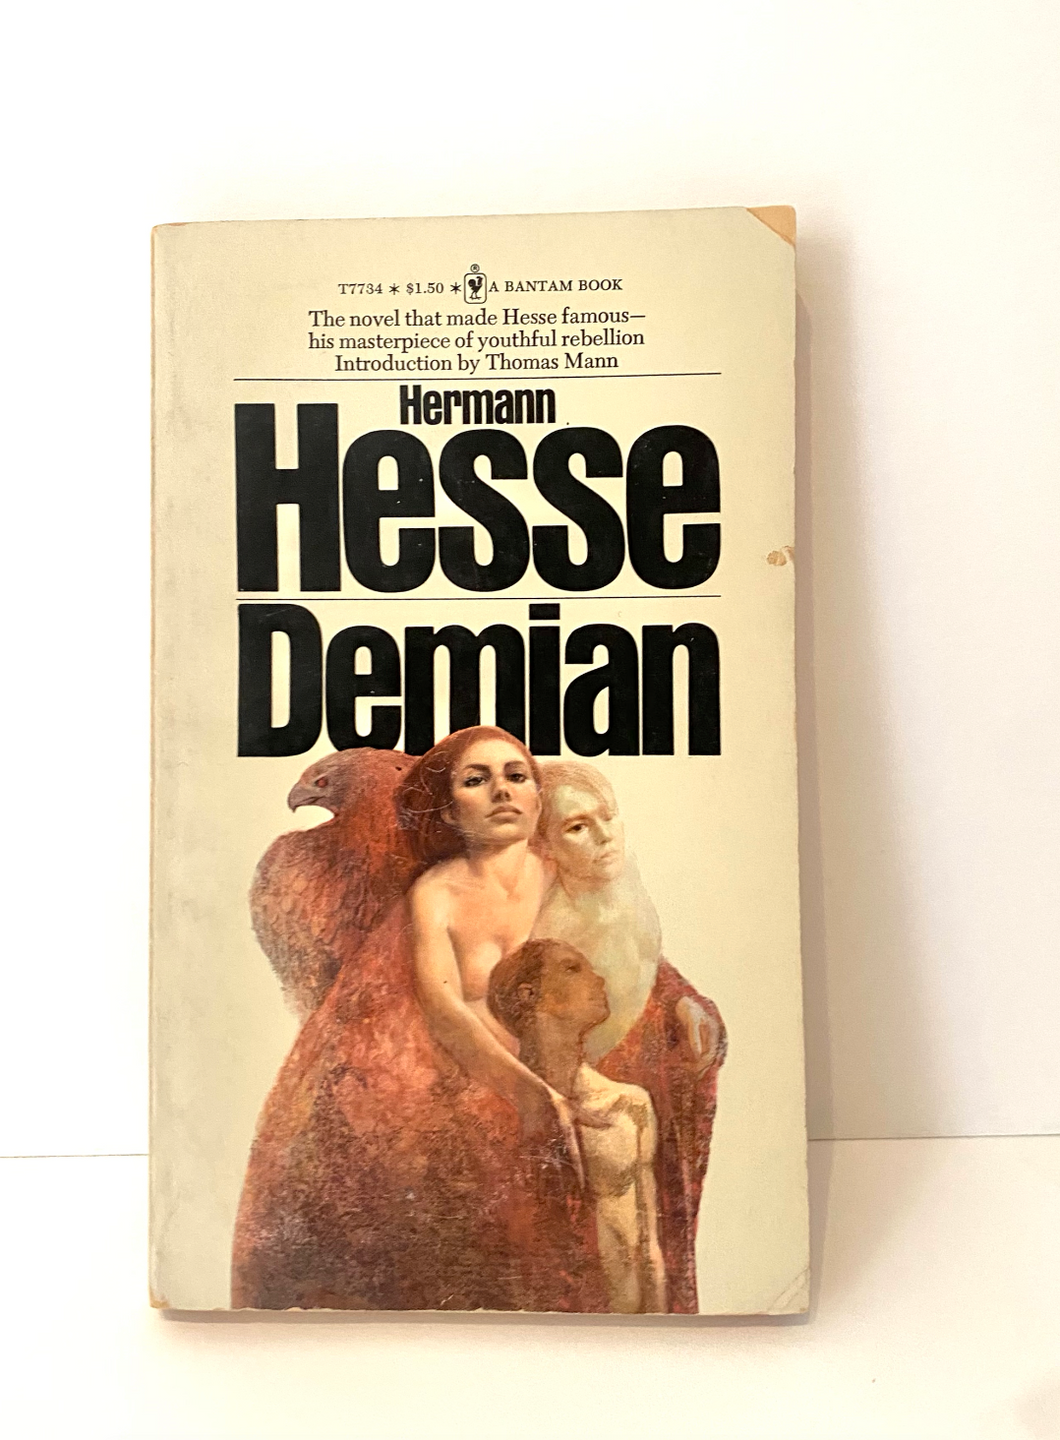 Damian by Hermann Hesse